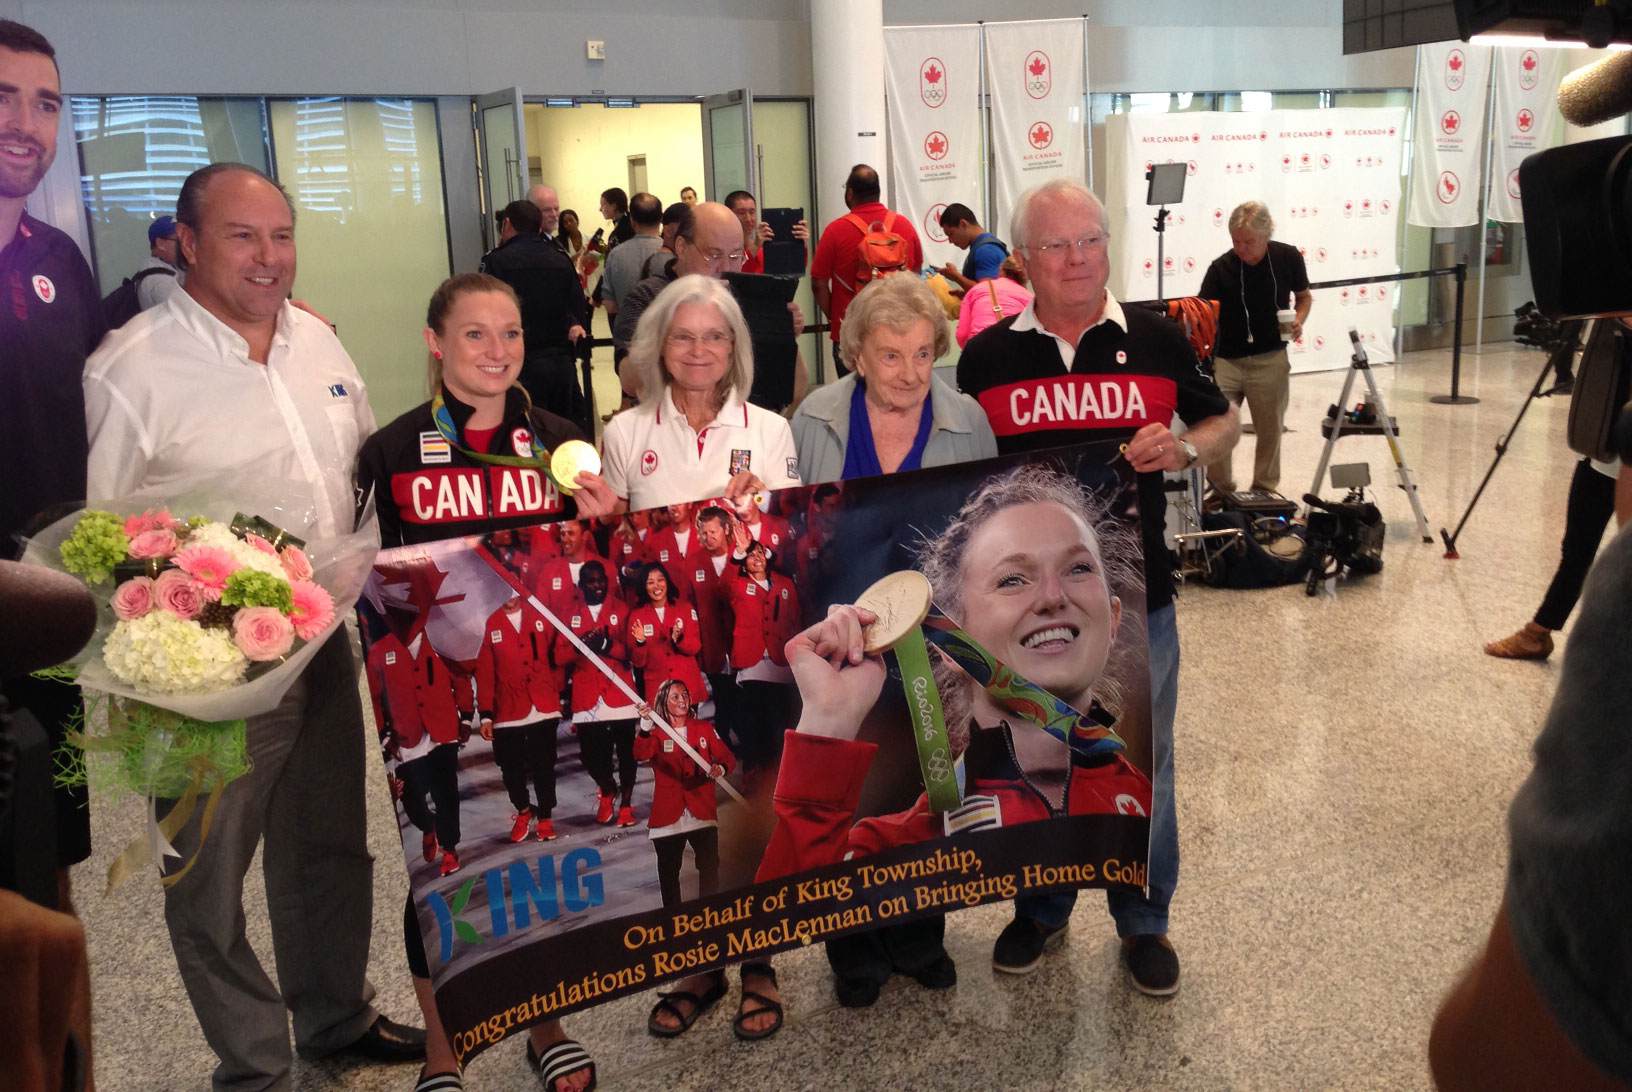 Canadian Athletes Return Home With A Supportive Welcome